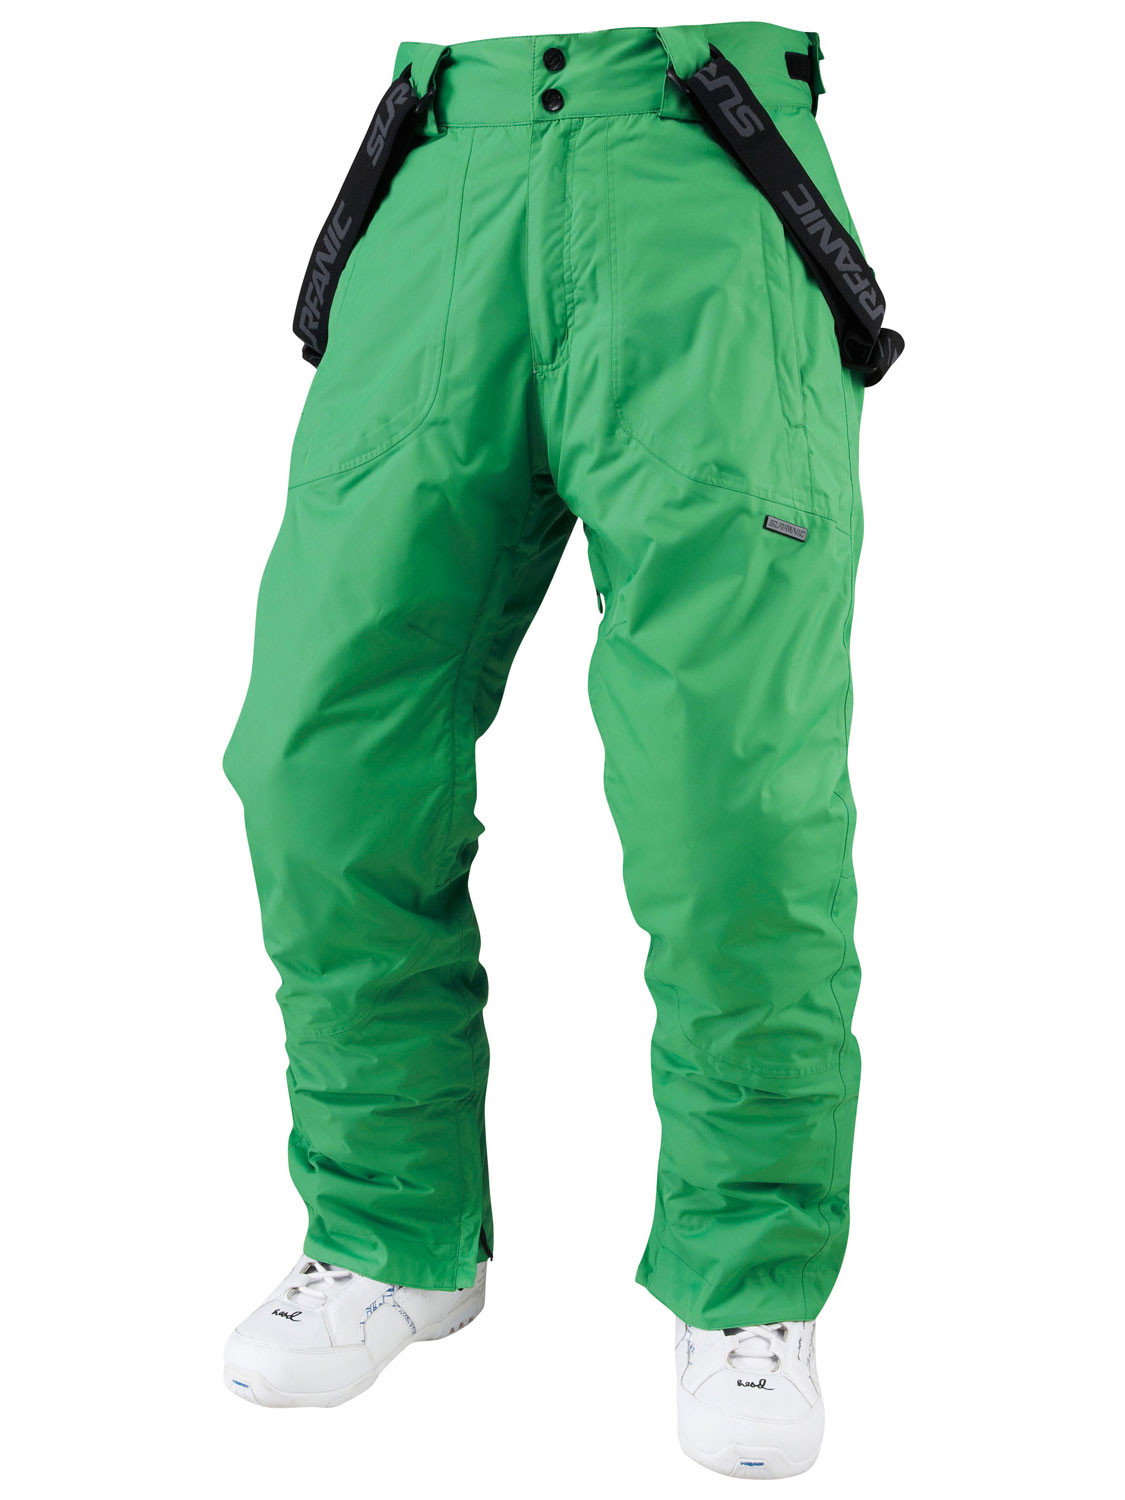 Surfanic Mens Ski Pants Salopettes Trousers Bottoms Green New ... 7a25f2f45